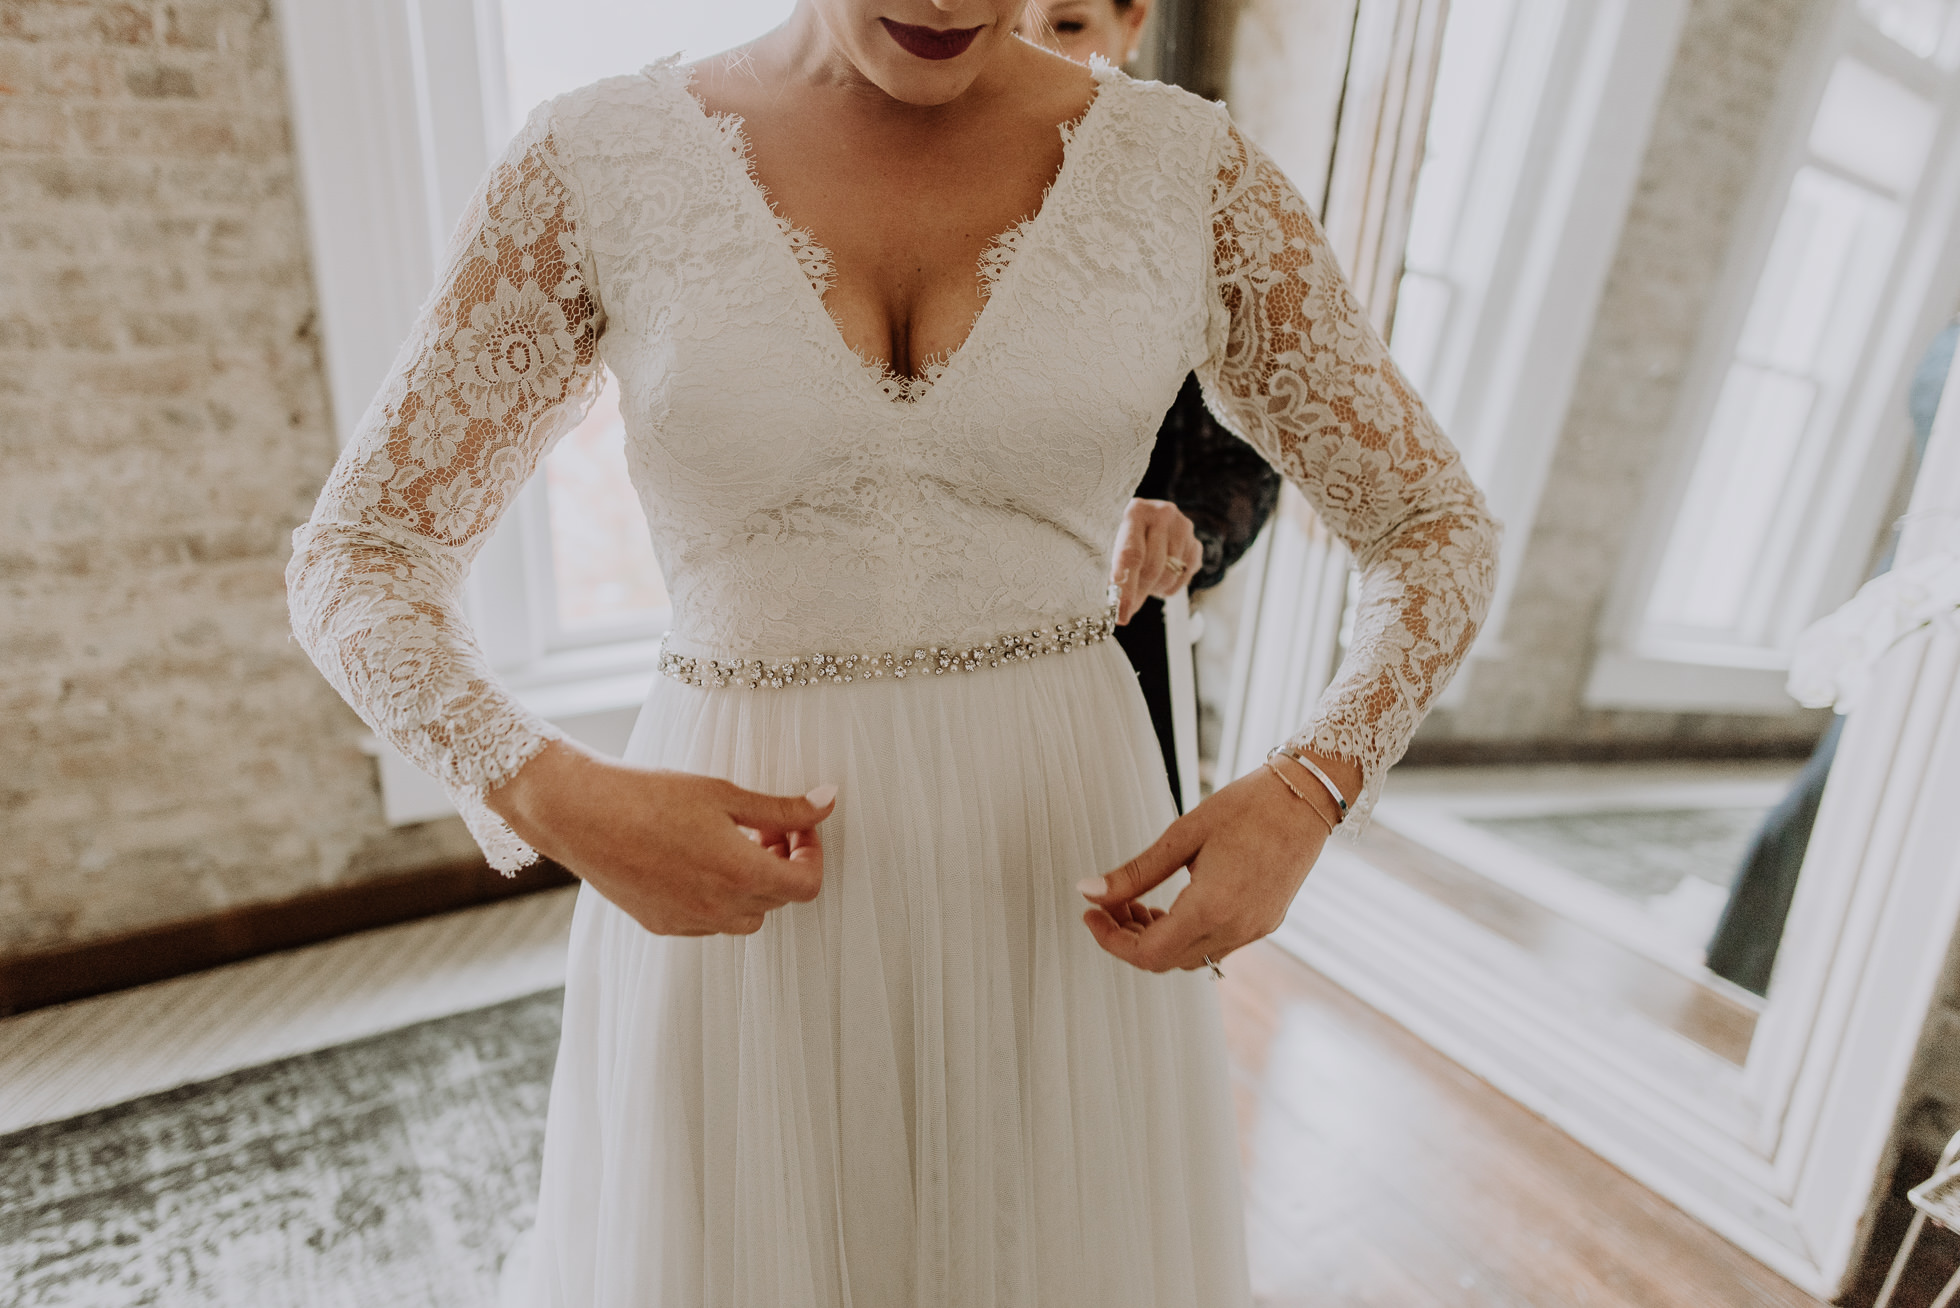 lace sleeves bride dress nashville wedding